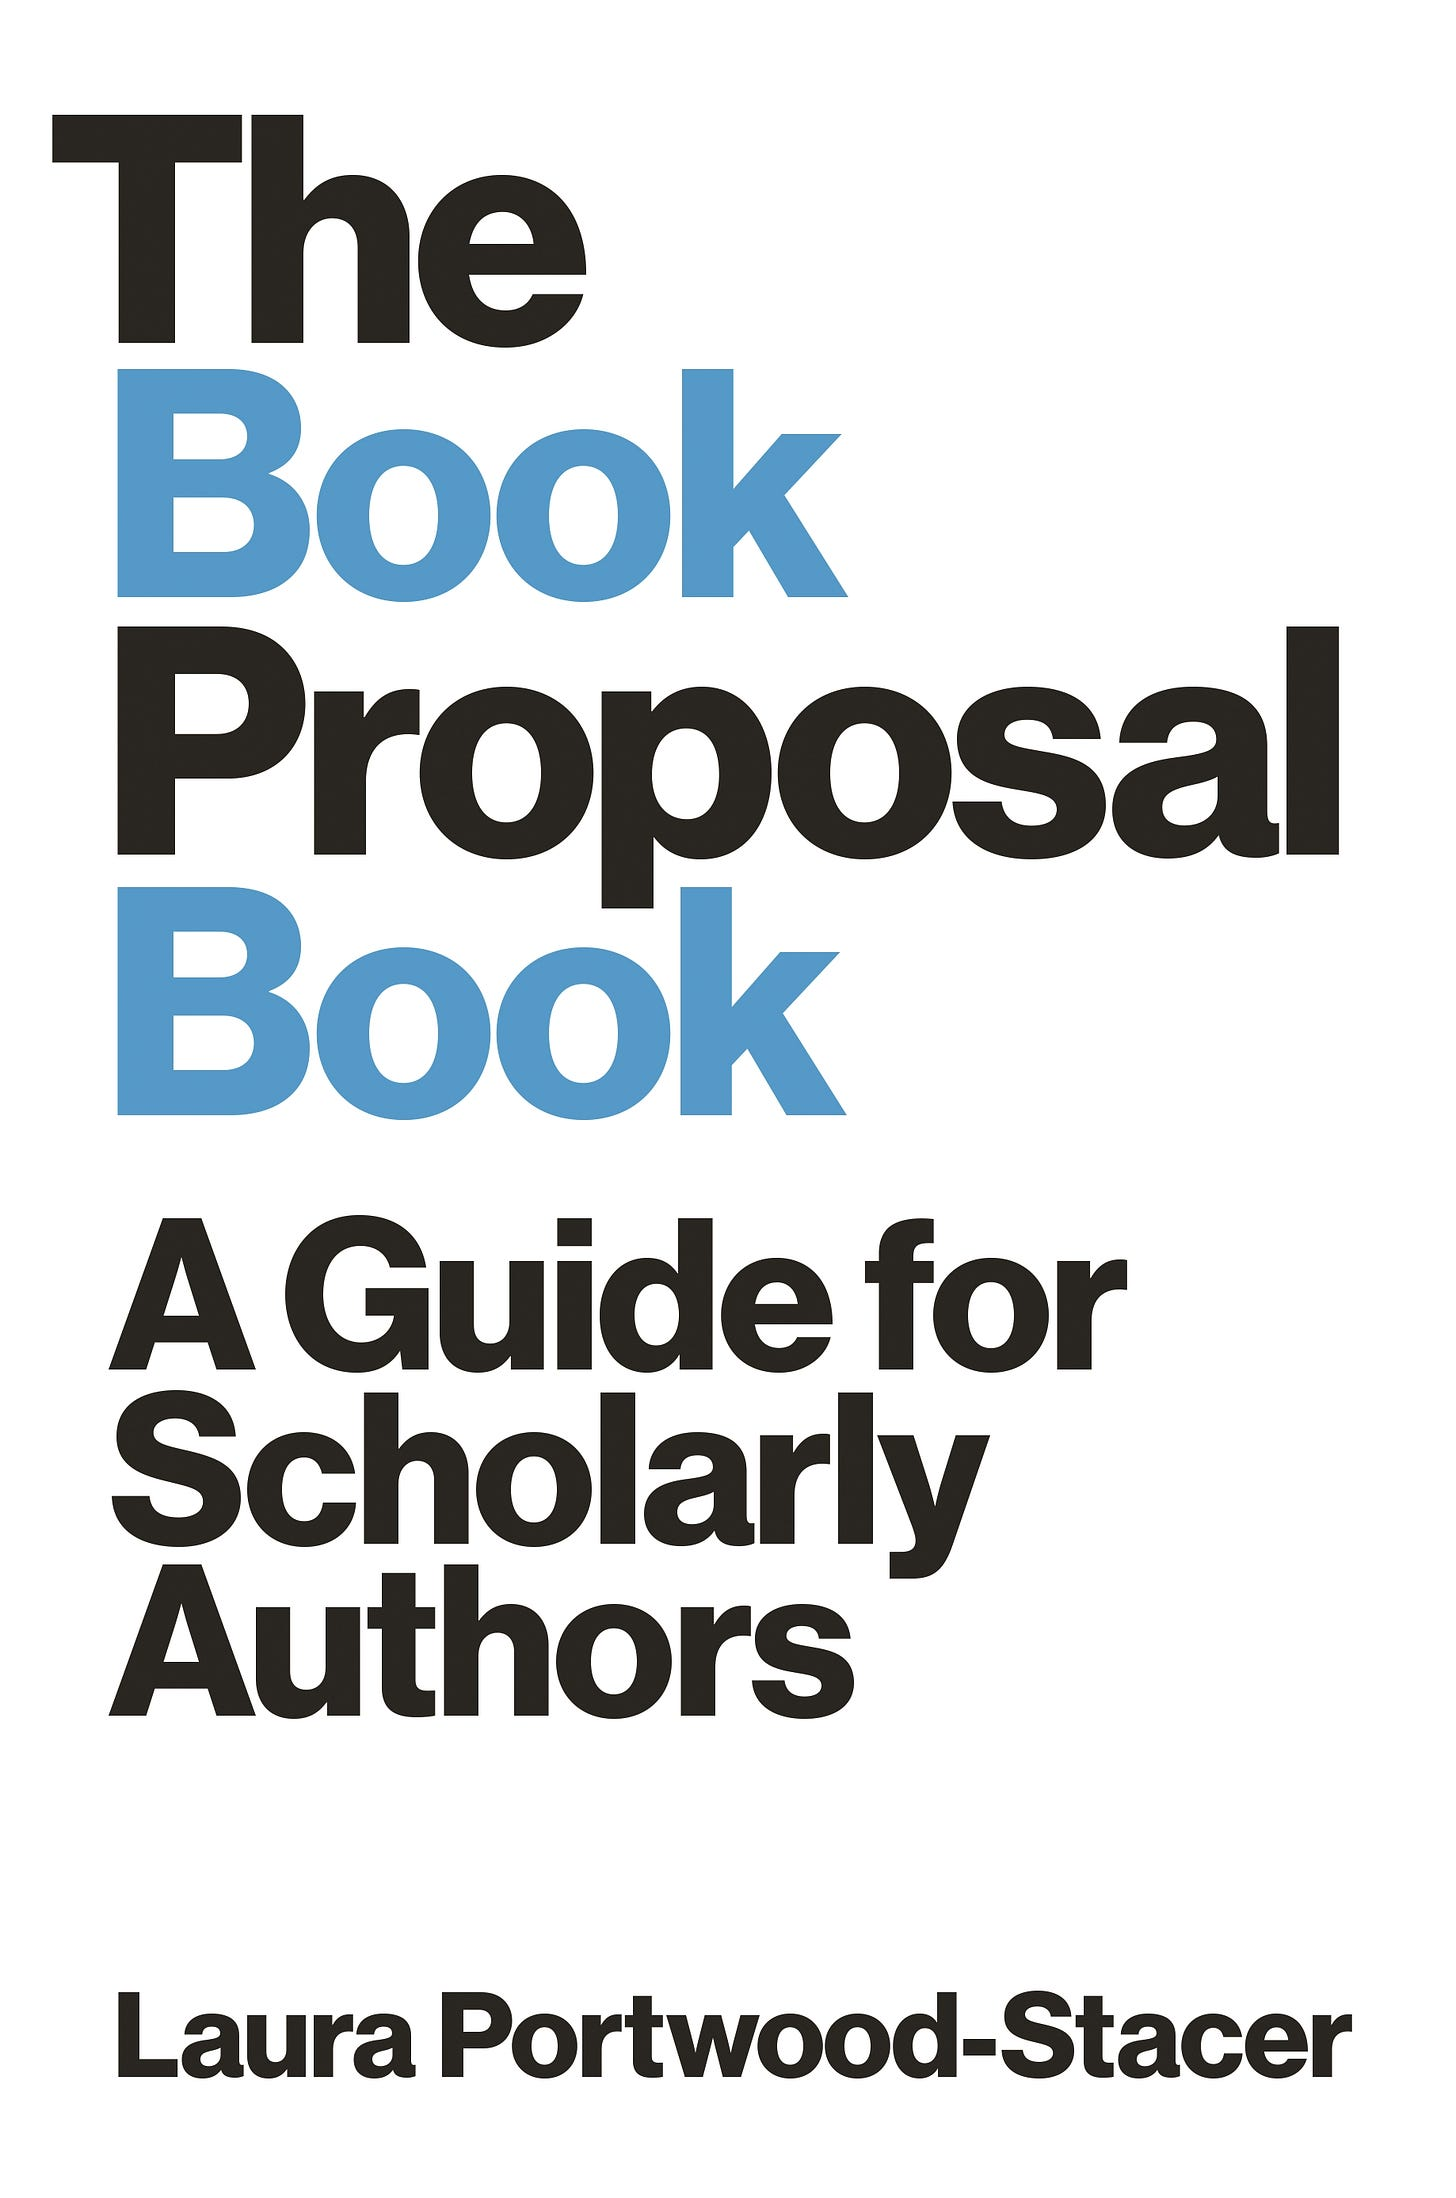 The Book Proposal Book: A Guide for Scholarly Authors, by Laura Portwood-Stacer